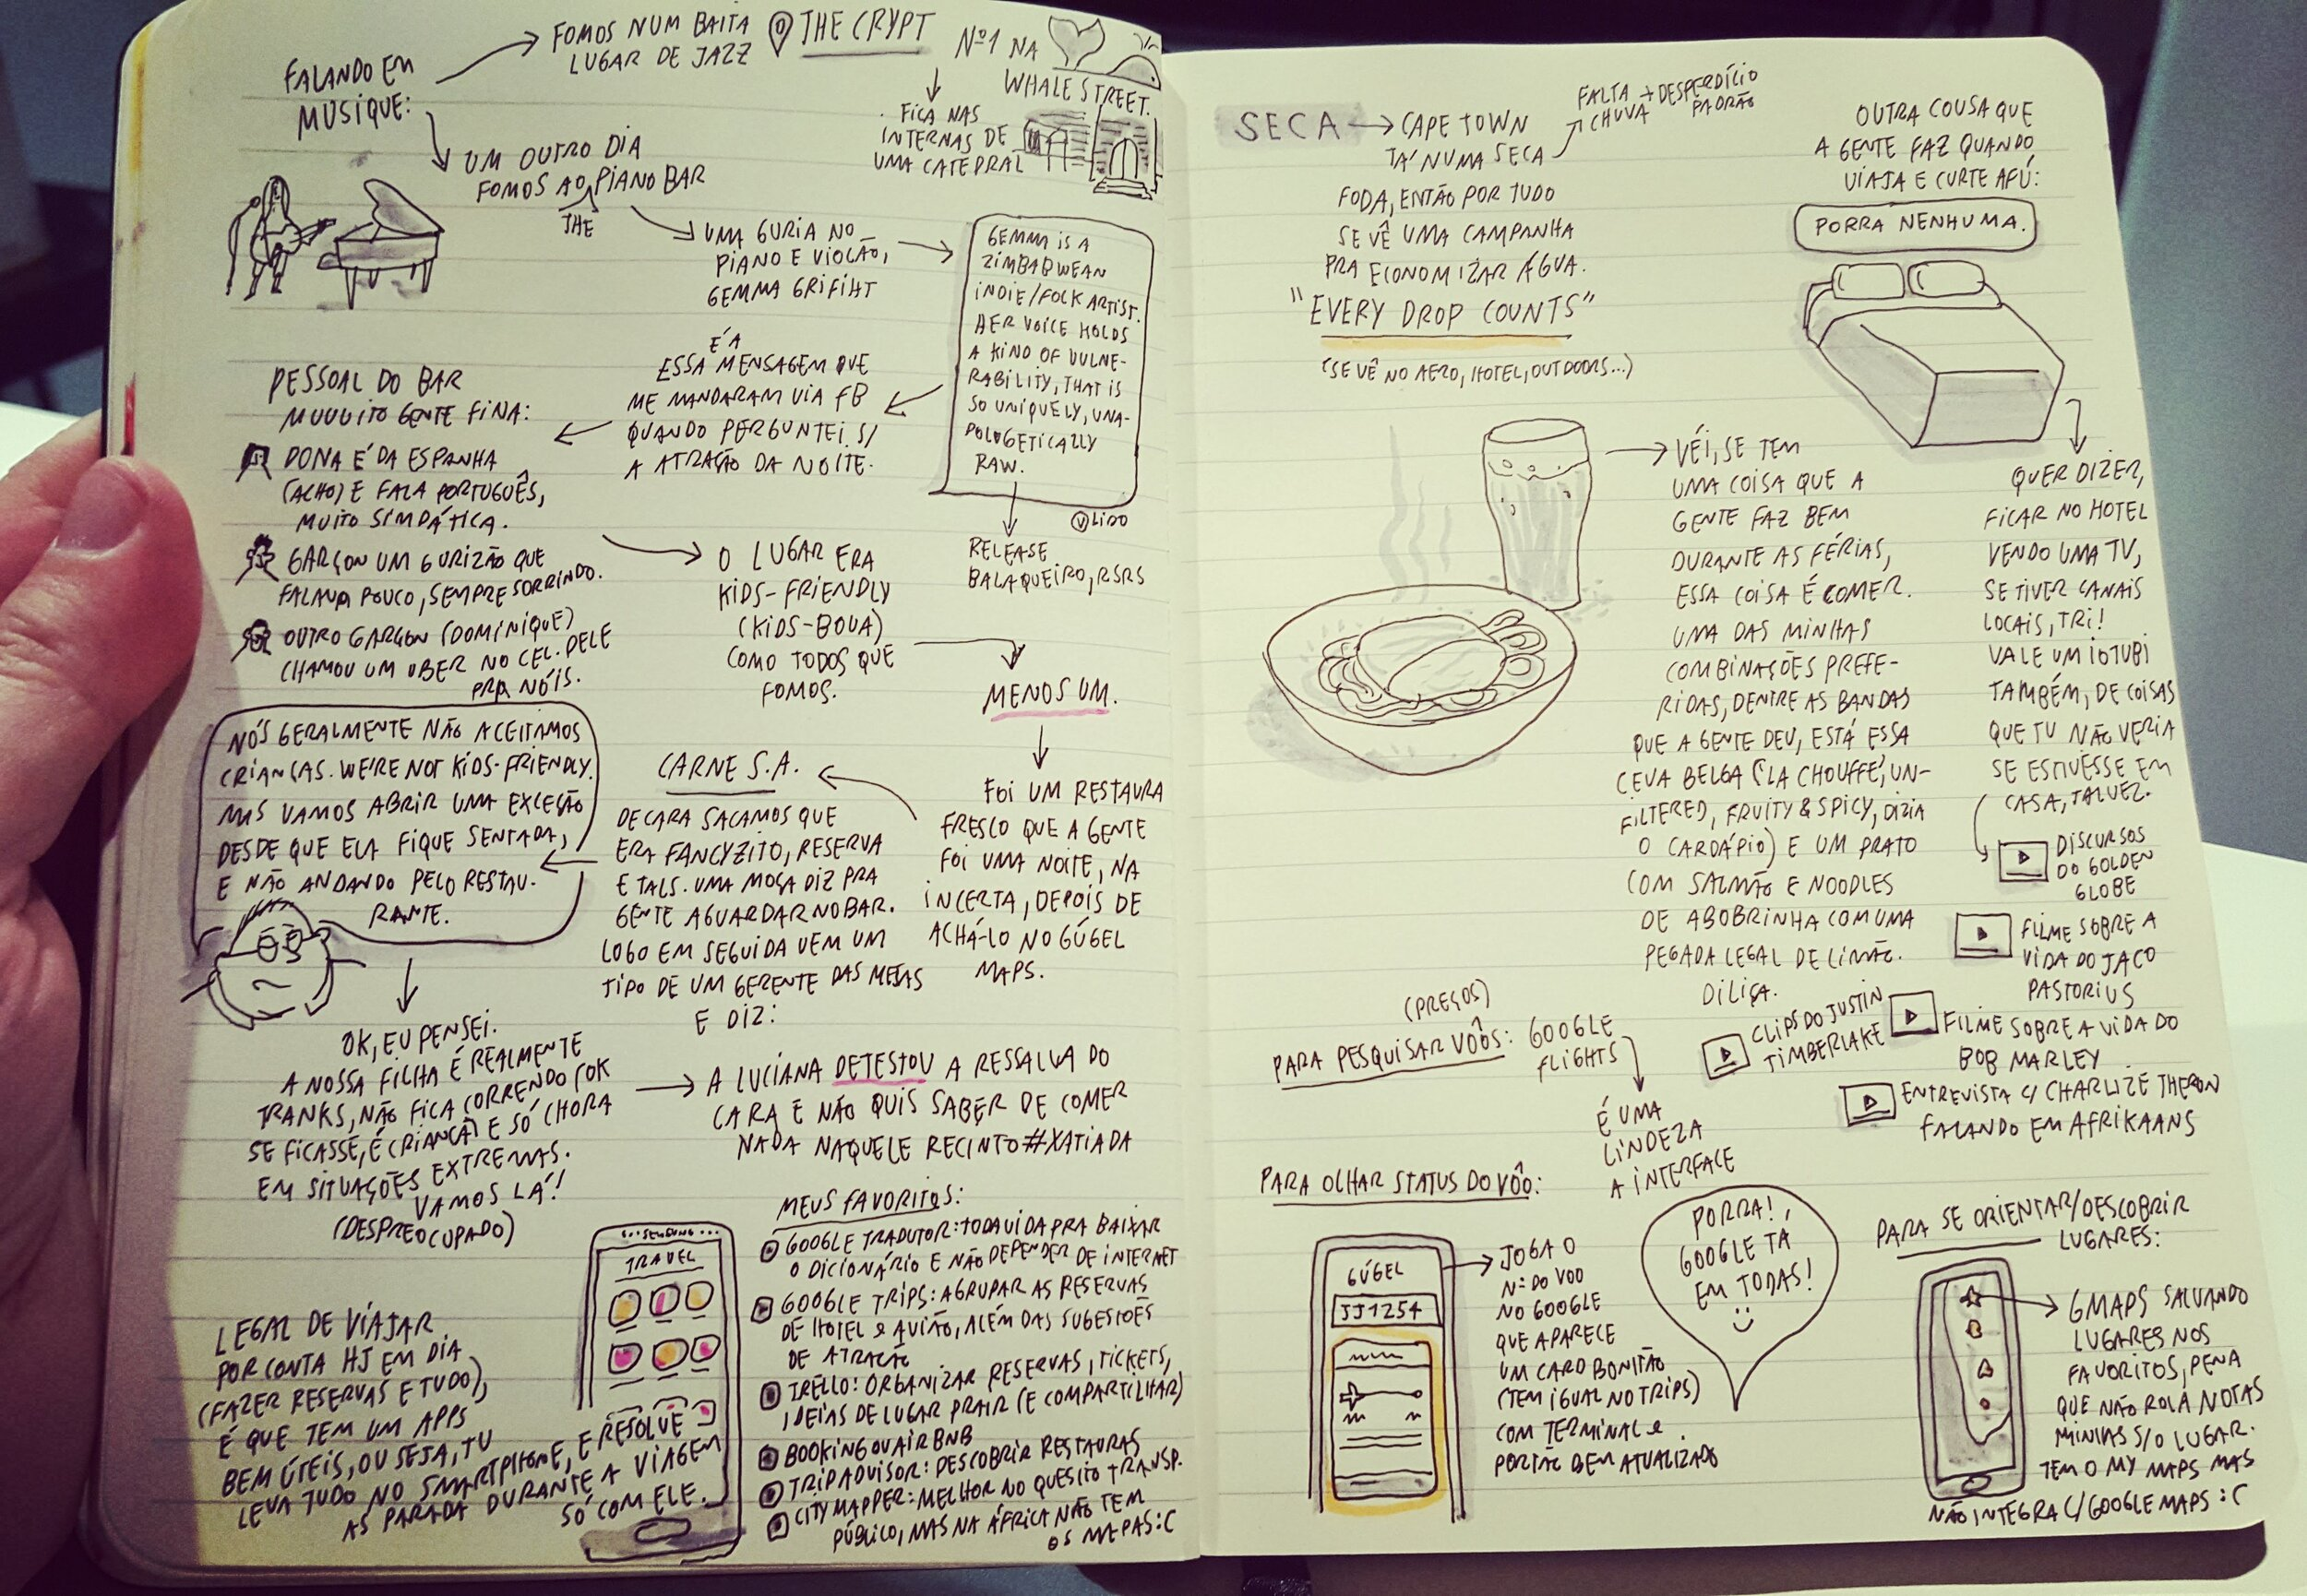 Travel notes.